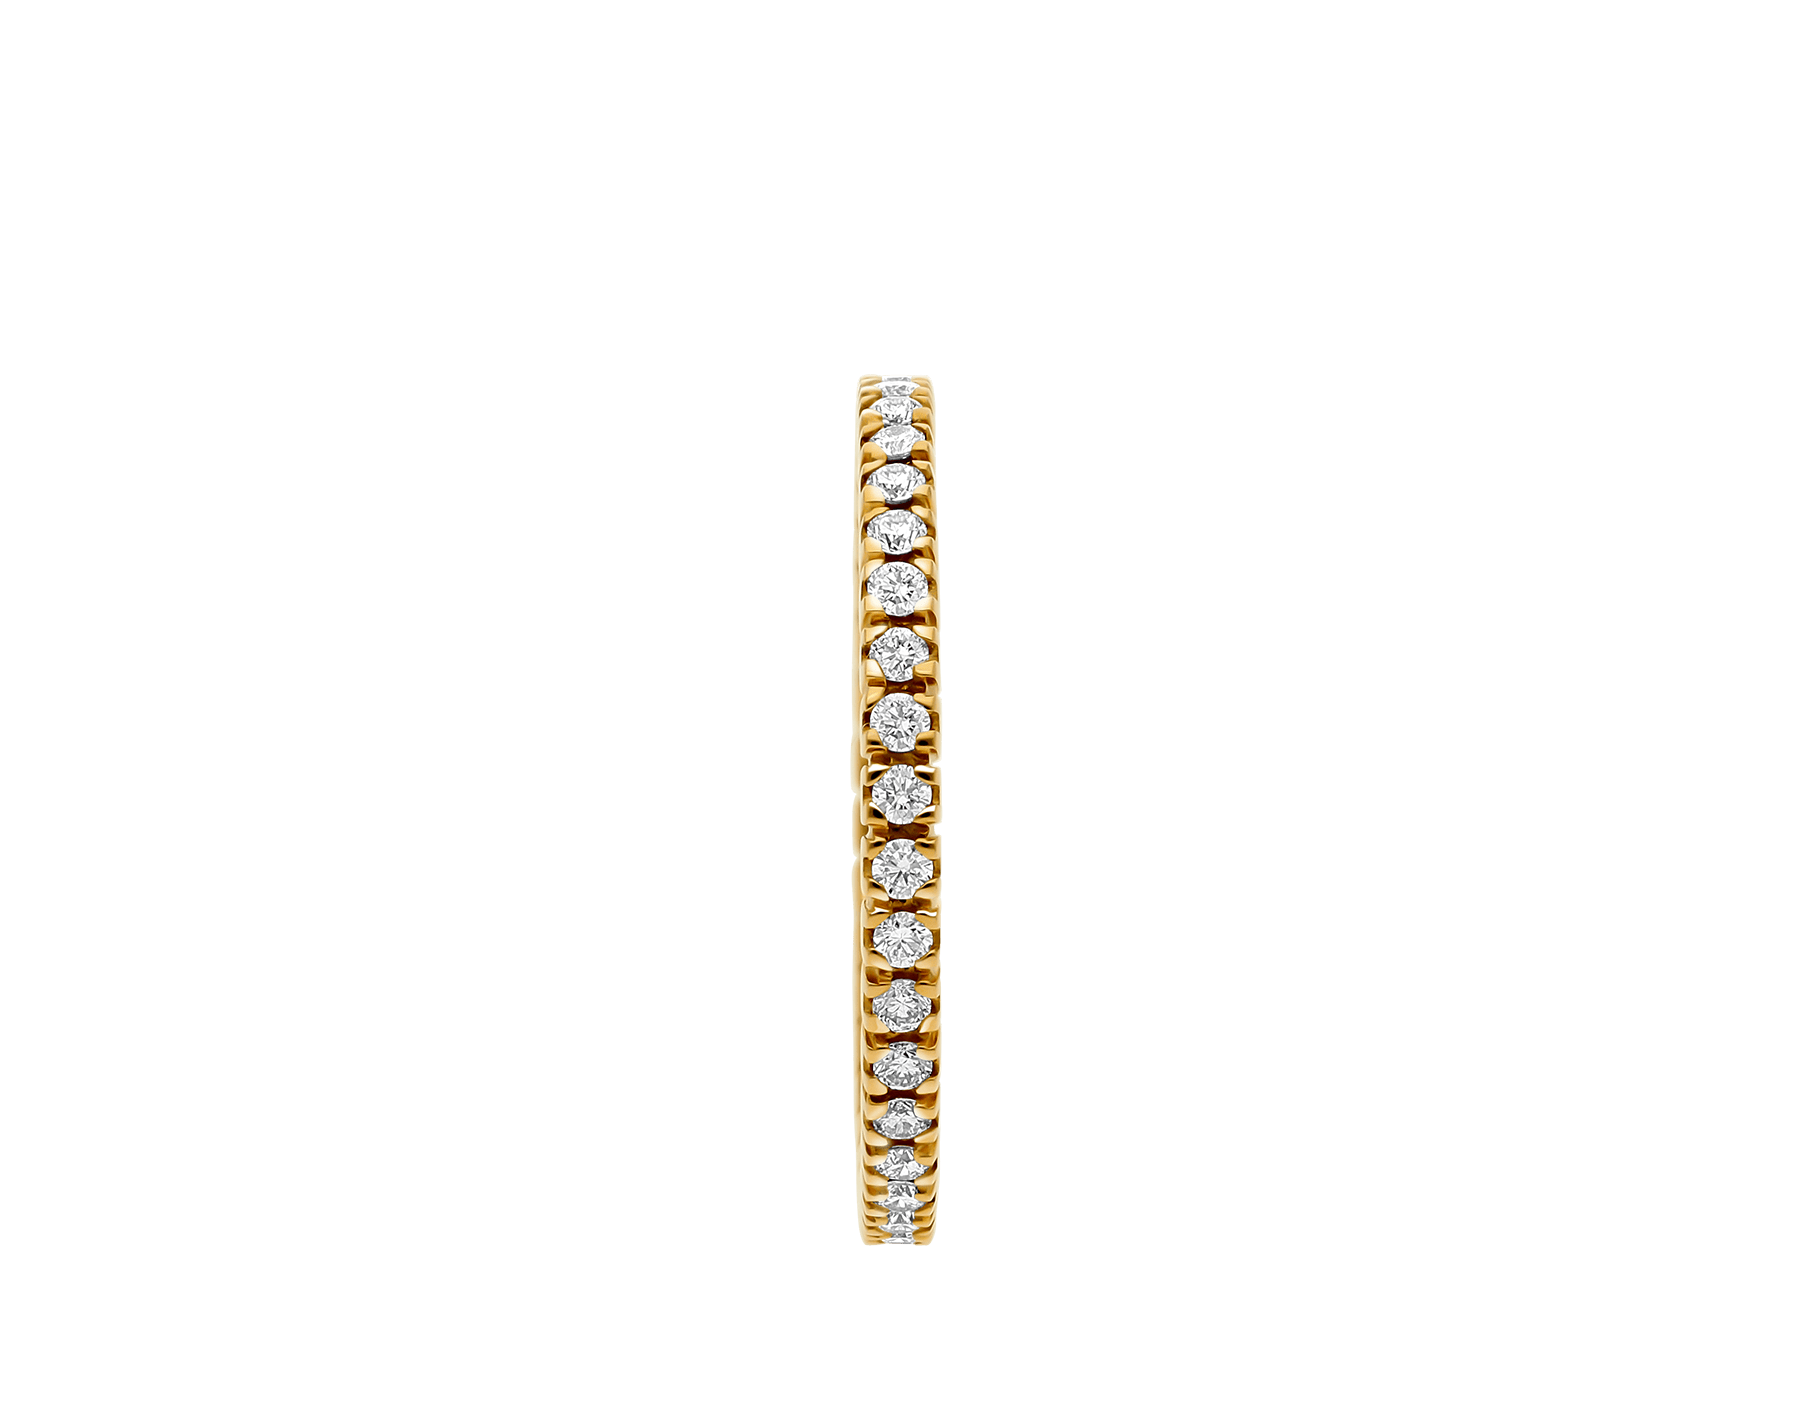 Eternity Band in thin size in 18 kt yellow gold with round brilliant cut diamonds AN856429 image 2